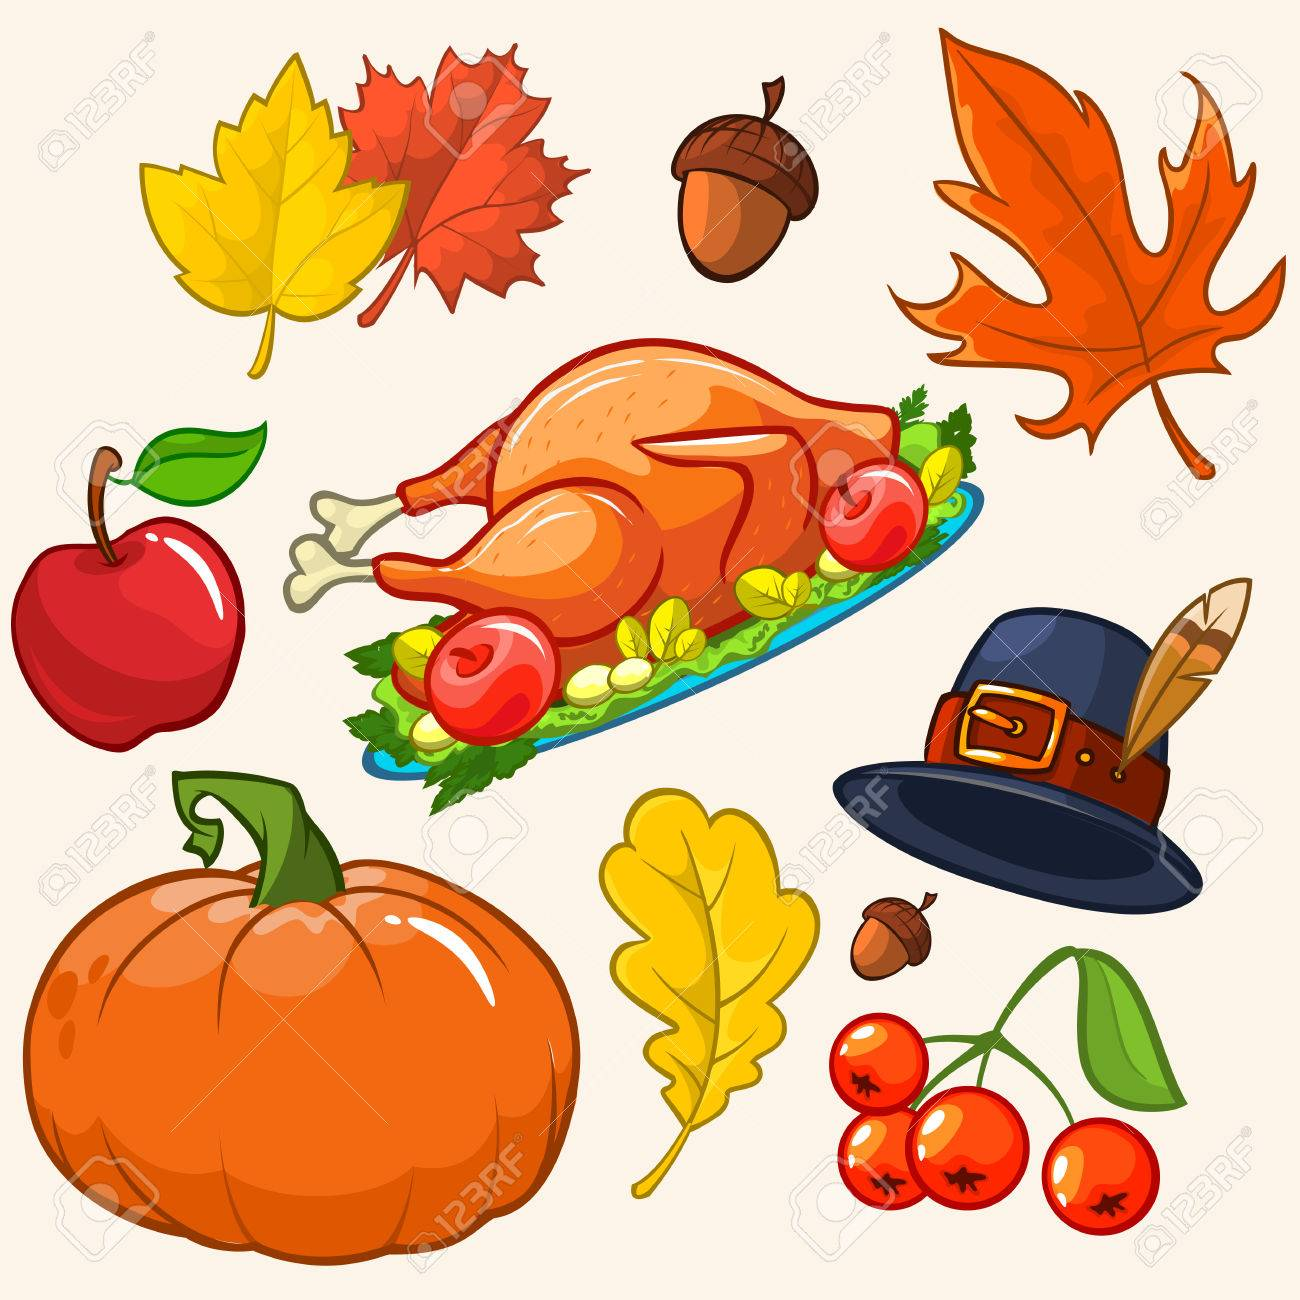 Free Share Cliparts Pilgrims, Download Free Clip Art, Free Clip Art on  Clipart Library